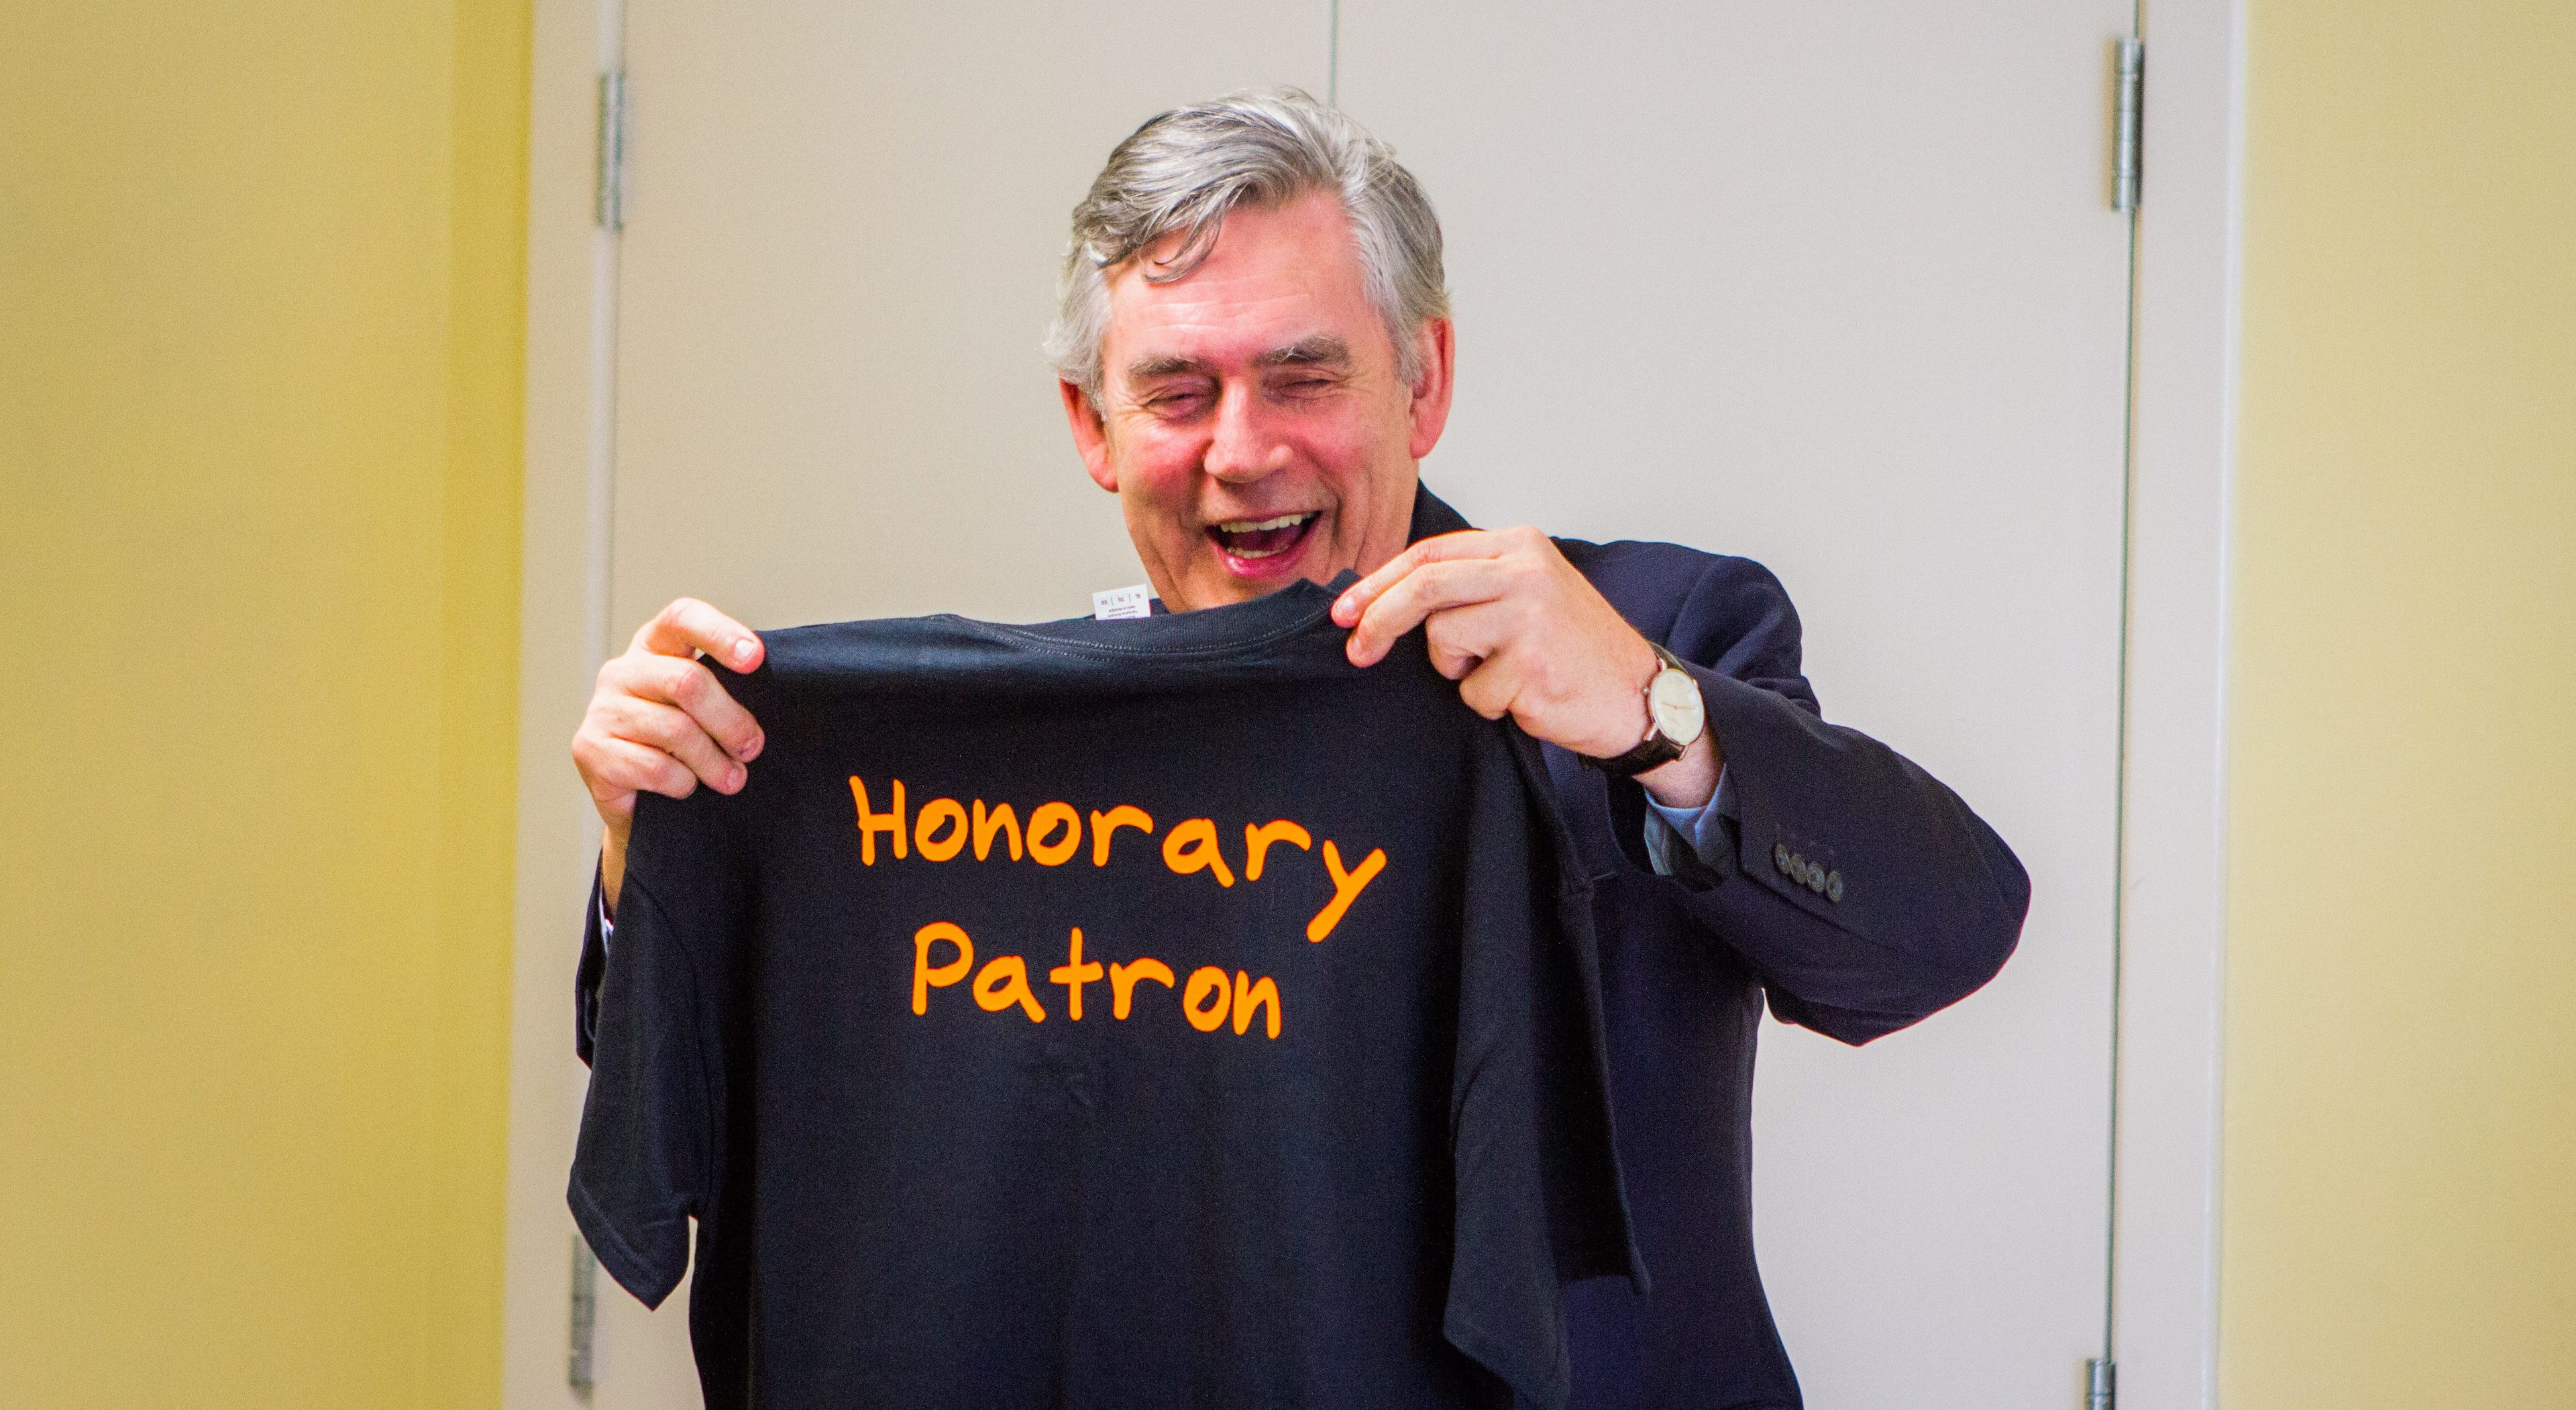 Gordon Brown with a T-shirt that was presented to him as a gift.